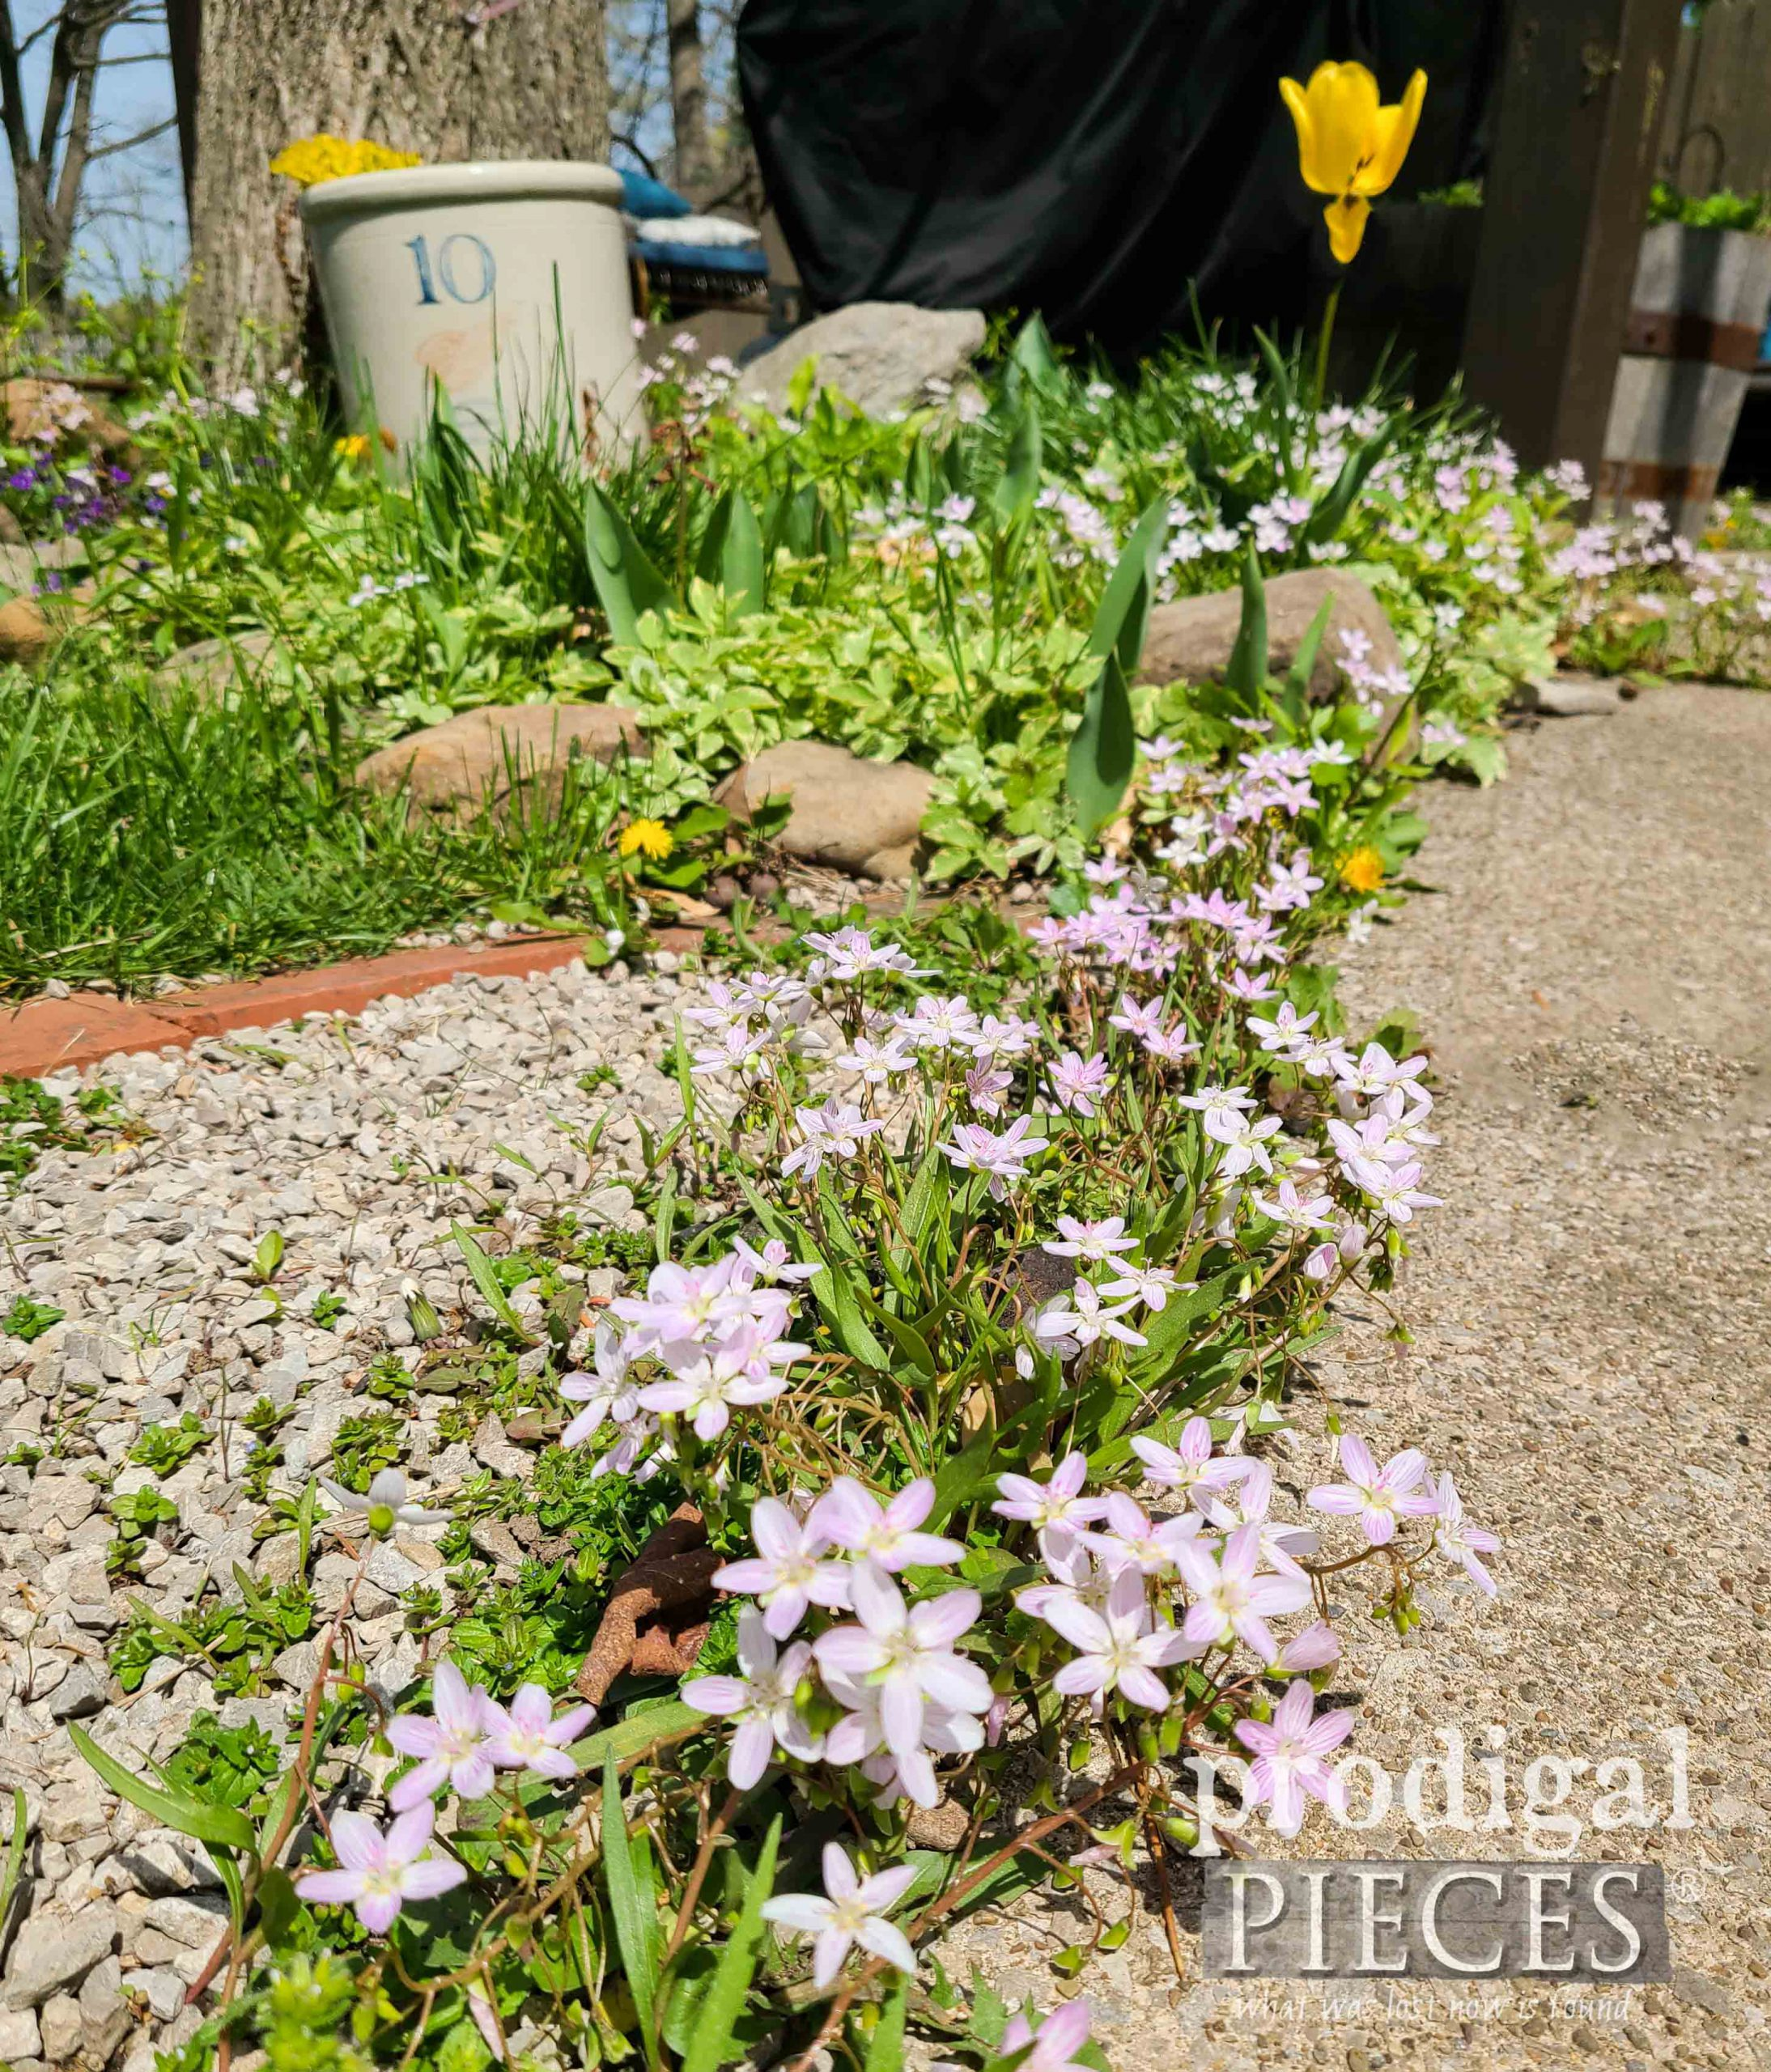 Tiny Pink Spring Beauty Flowers in Garden | Waiting on the Lord by Prodigal Pieces | prodigalpieces.com #prodigalpieces #flowers #garden